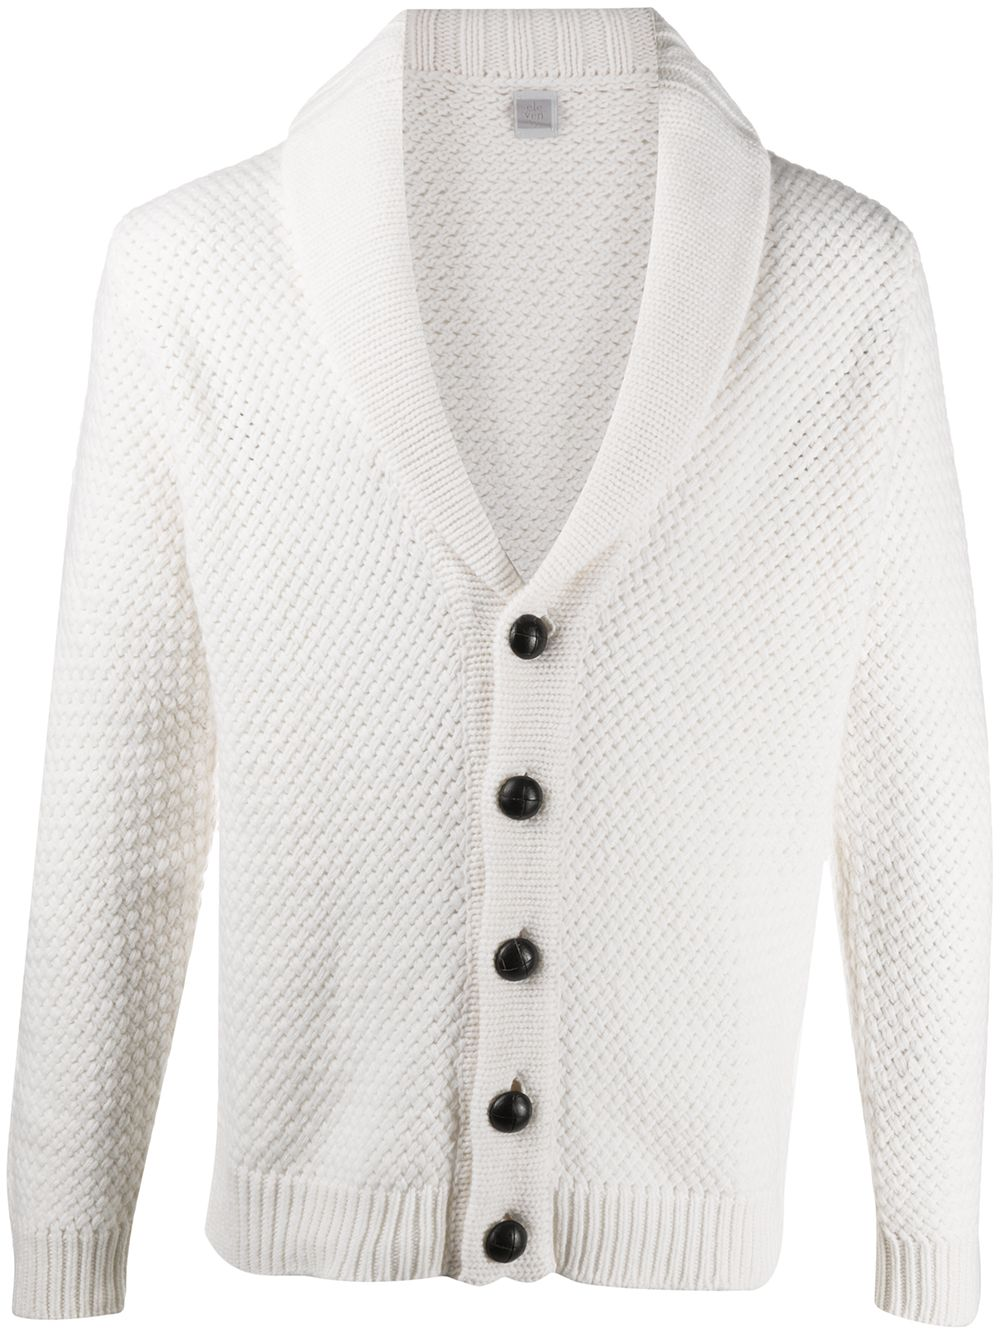 Cream wool cardigan featuring knitted construction ELEVENTY      B71MAGB35-MAG0B02301